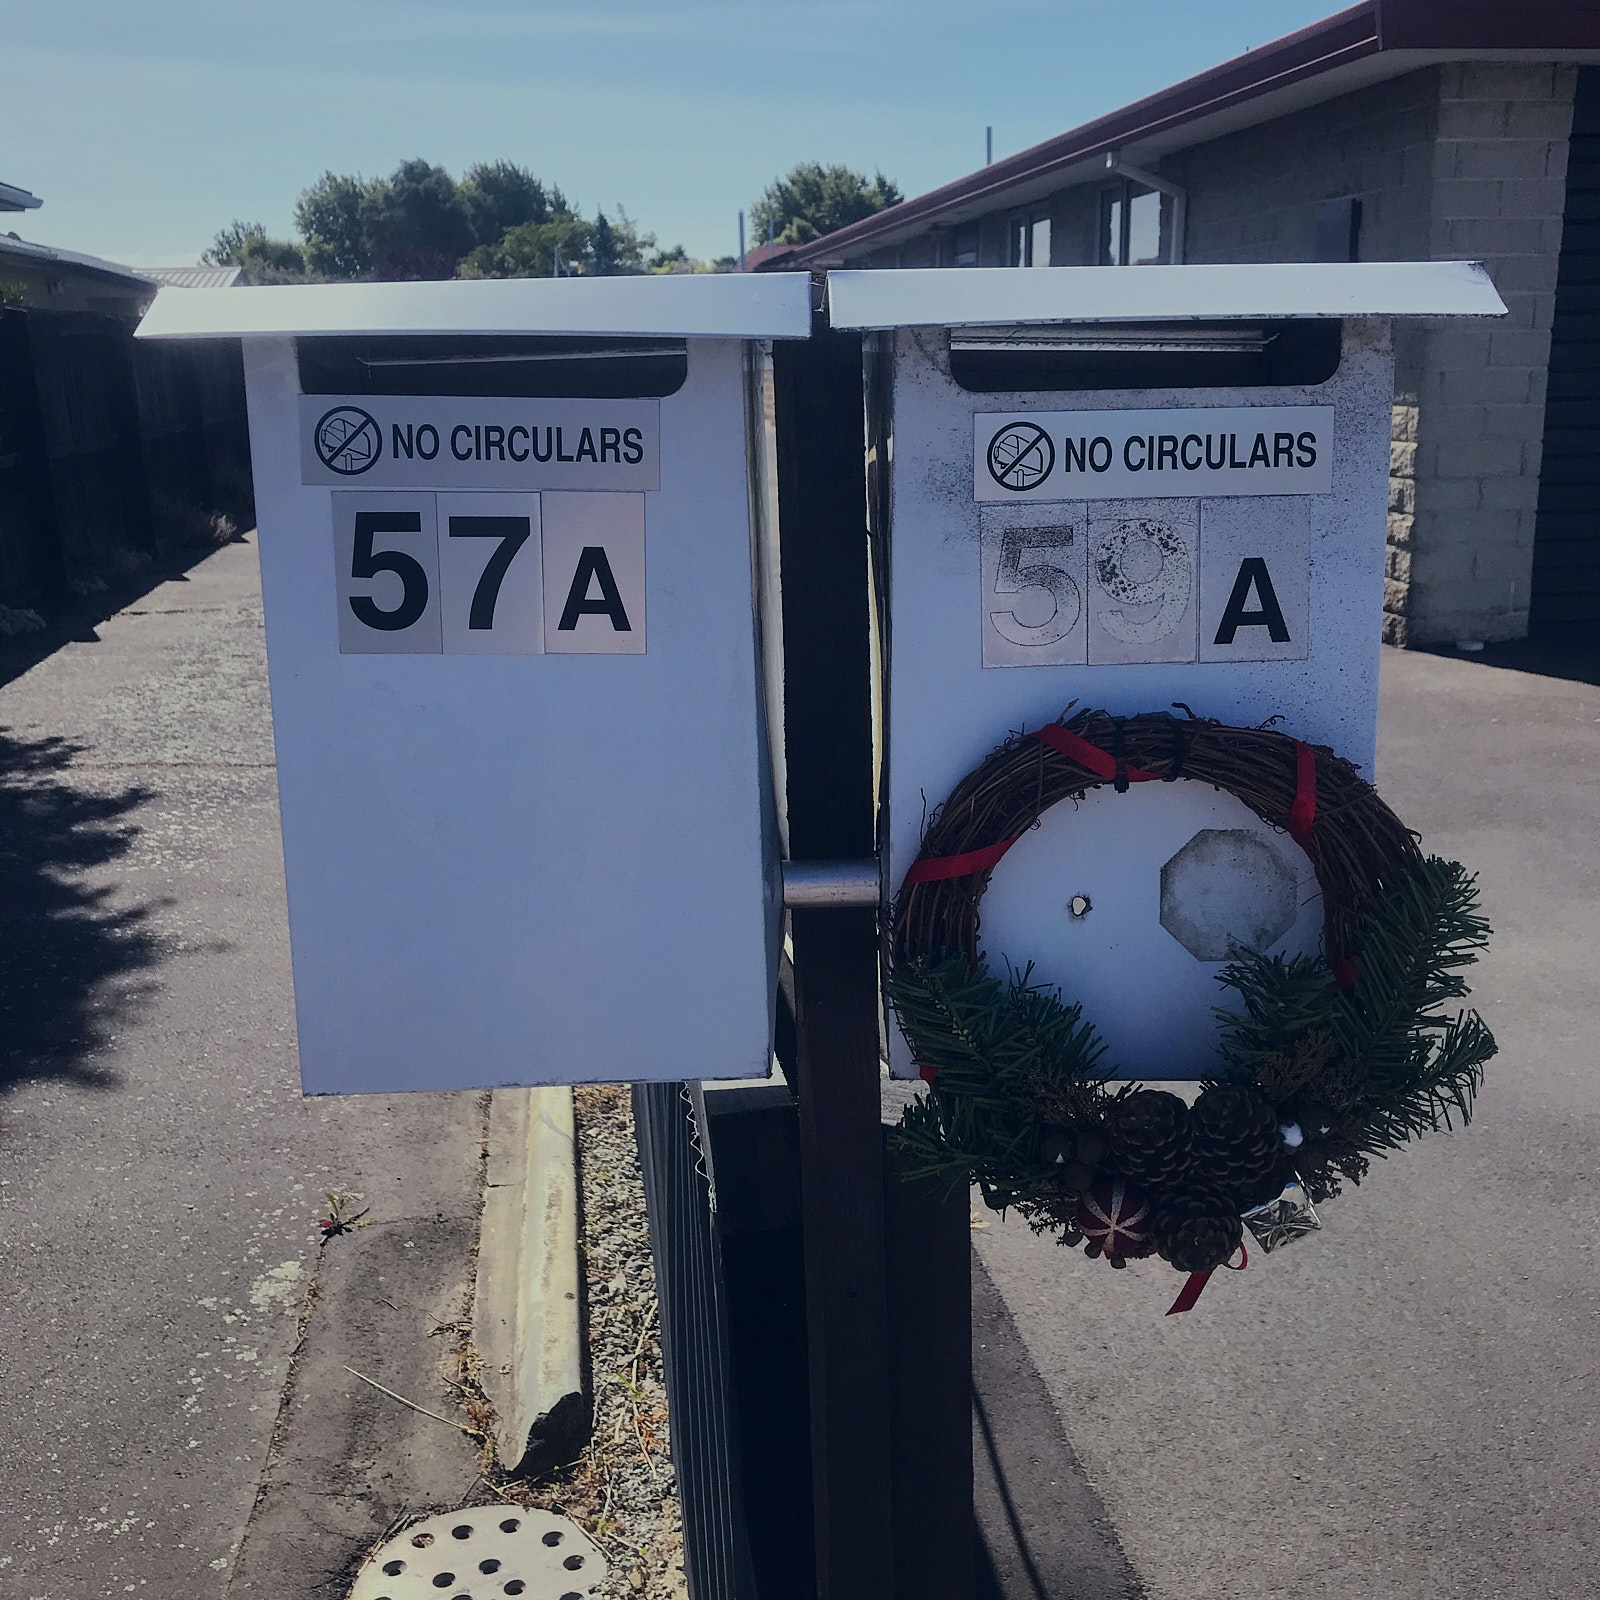 Two letterboxes, one with a wreath